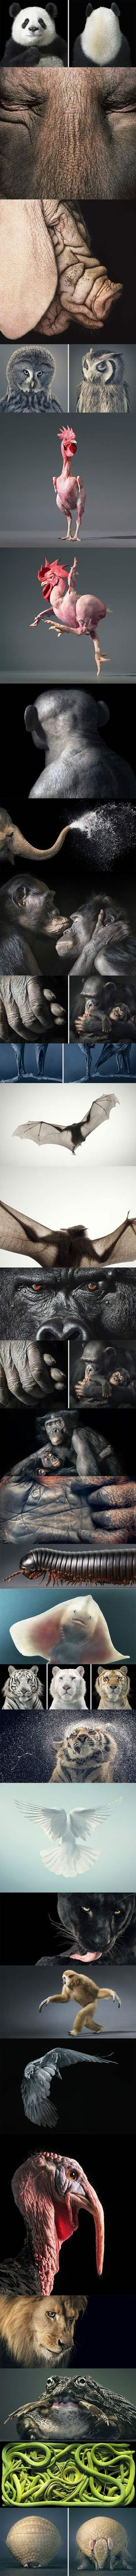 Animal portraits.